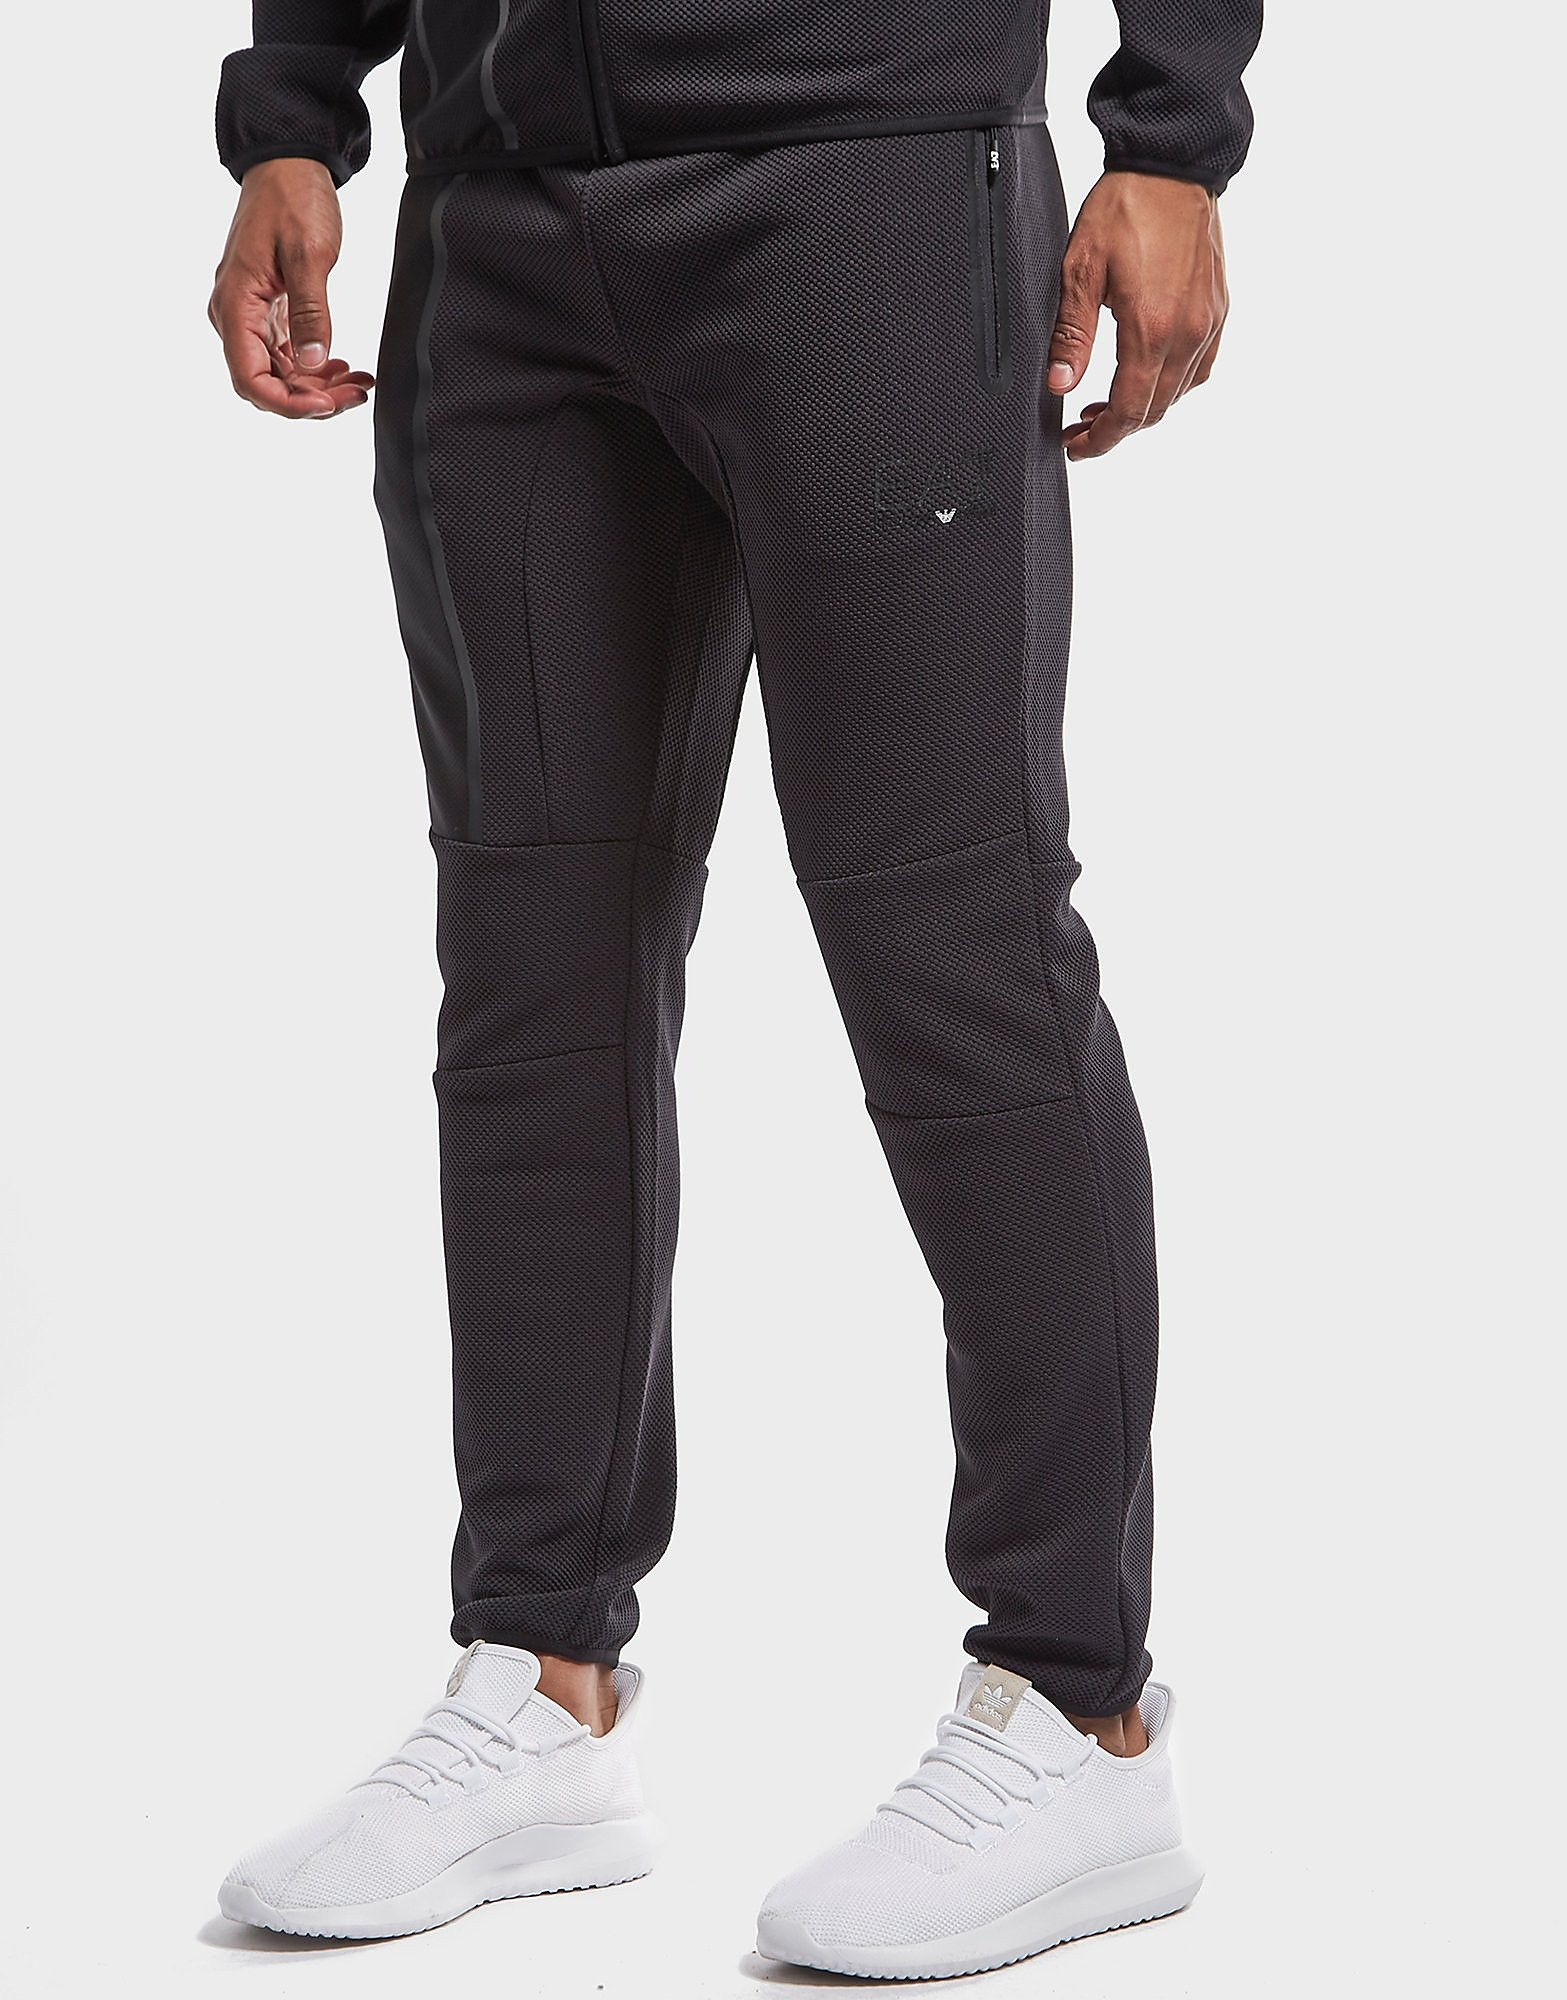 Emporio Armani EA7 Evolution Mesh Pants